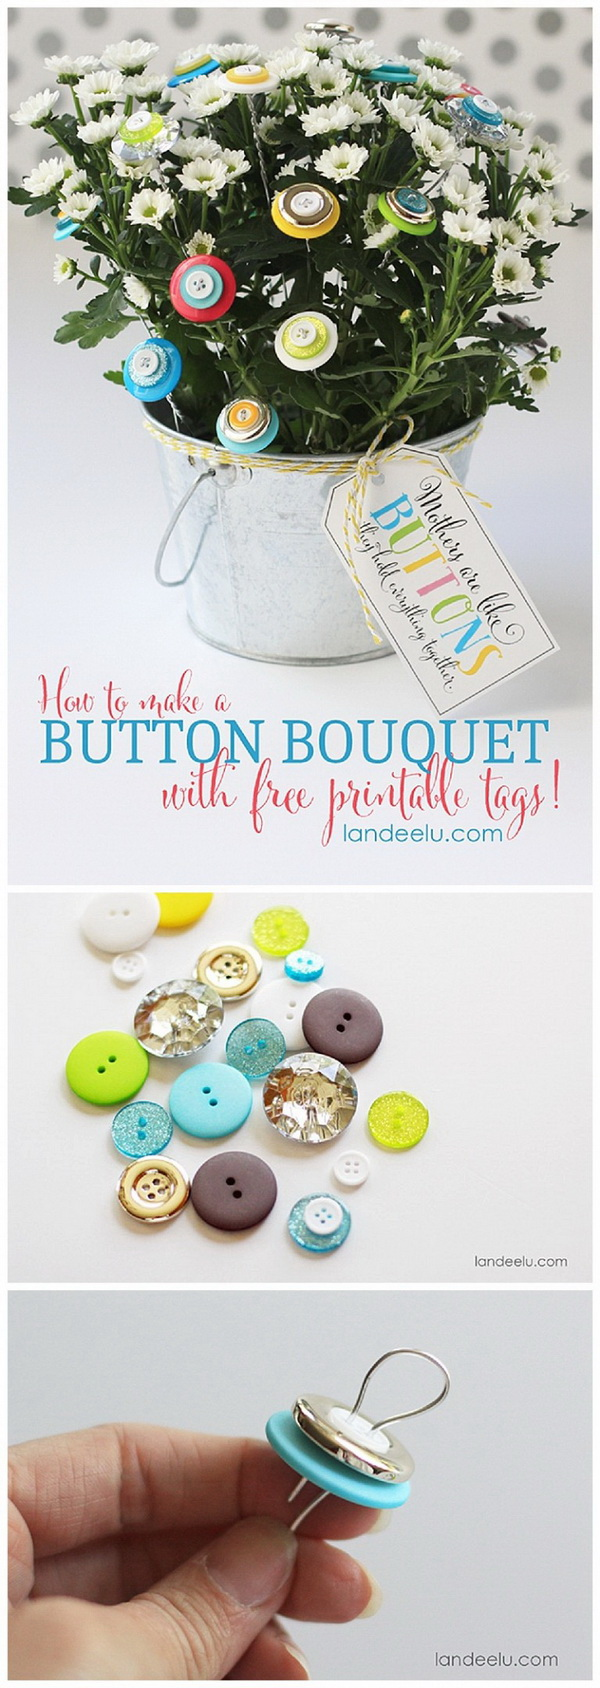 DIY Button Bouquet. Button bouquets are relatively easy and inexpensive to make yourself. Collect a selection of new and vintage buttons and start to make one of your own.